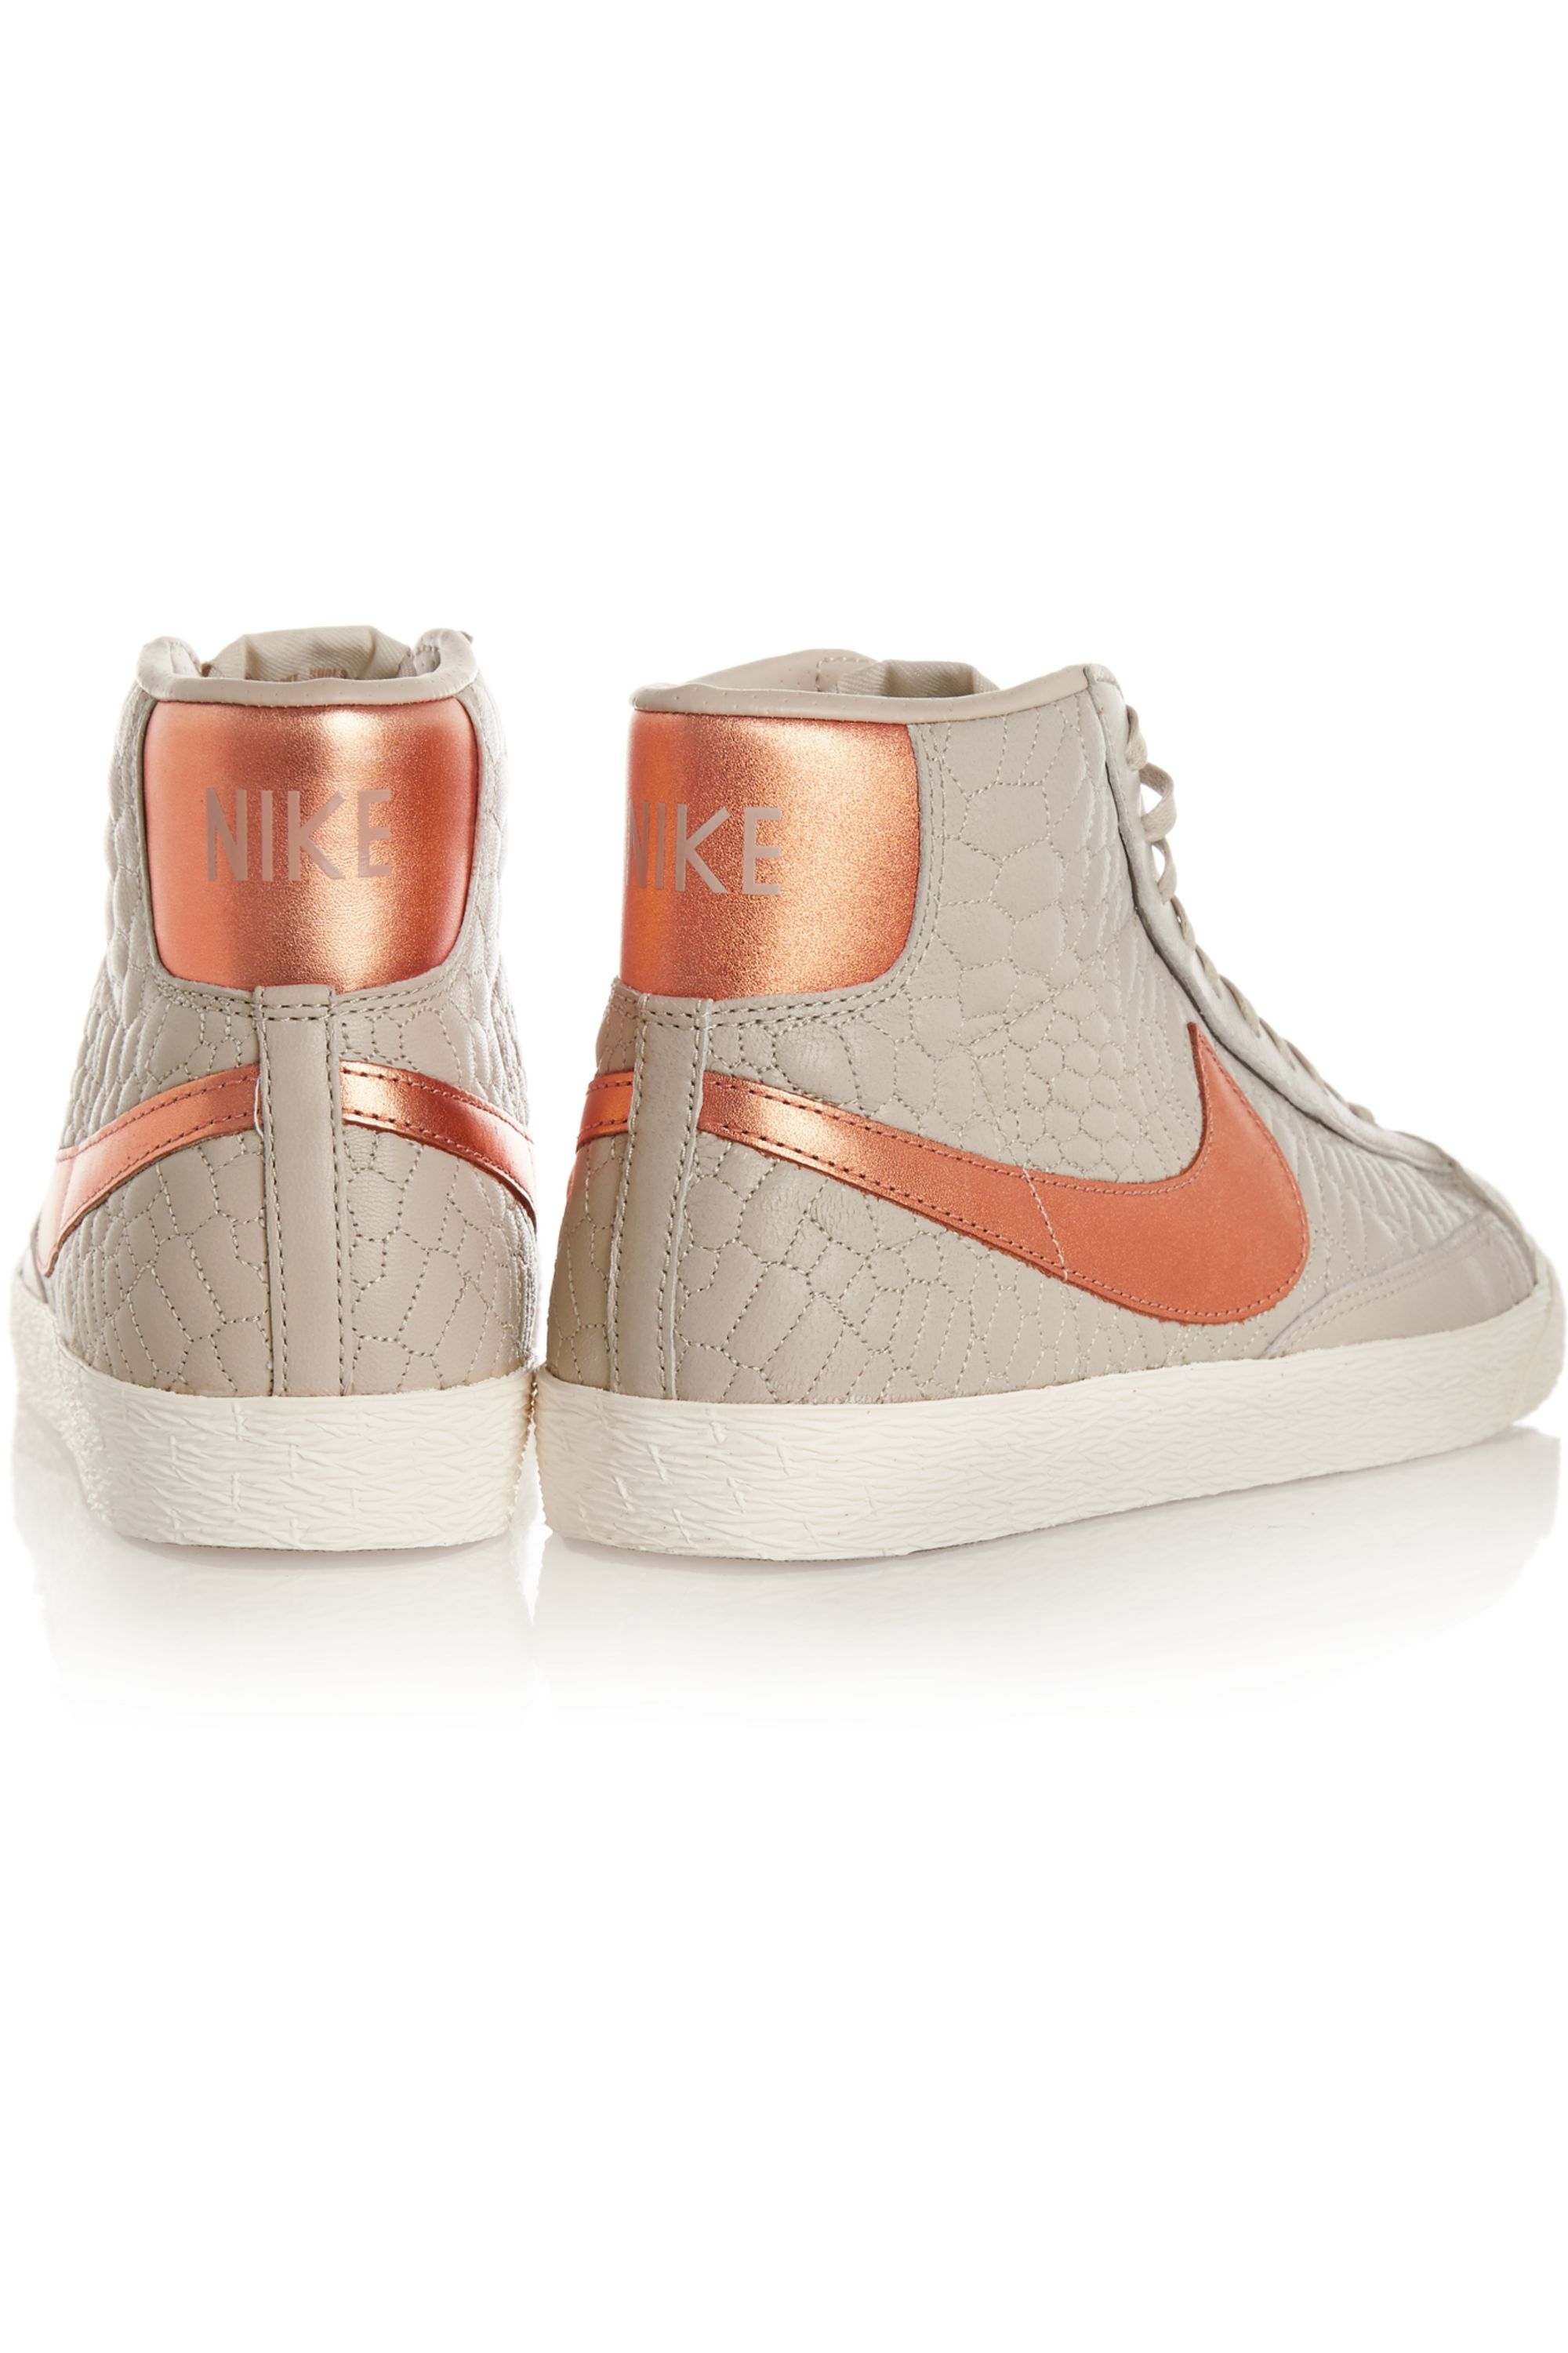 Nike Blazer croc-effect leather high-top sneakers